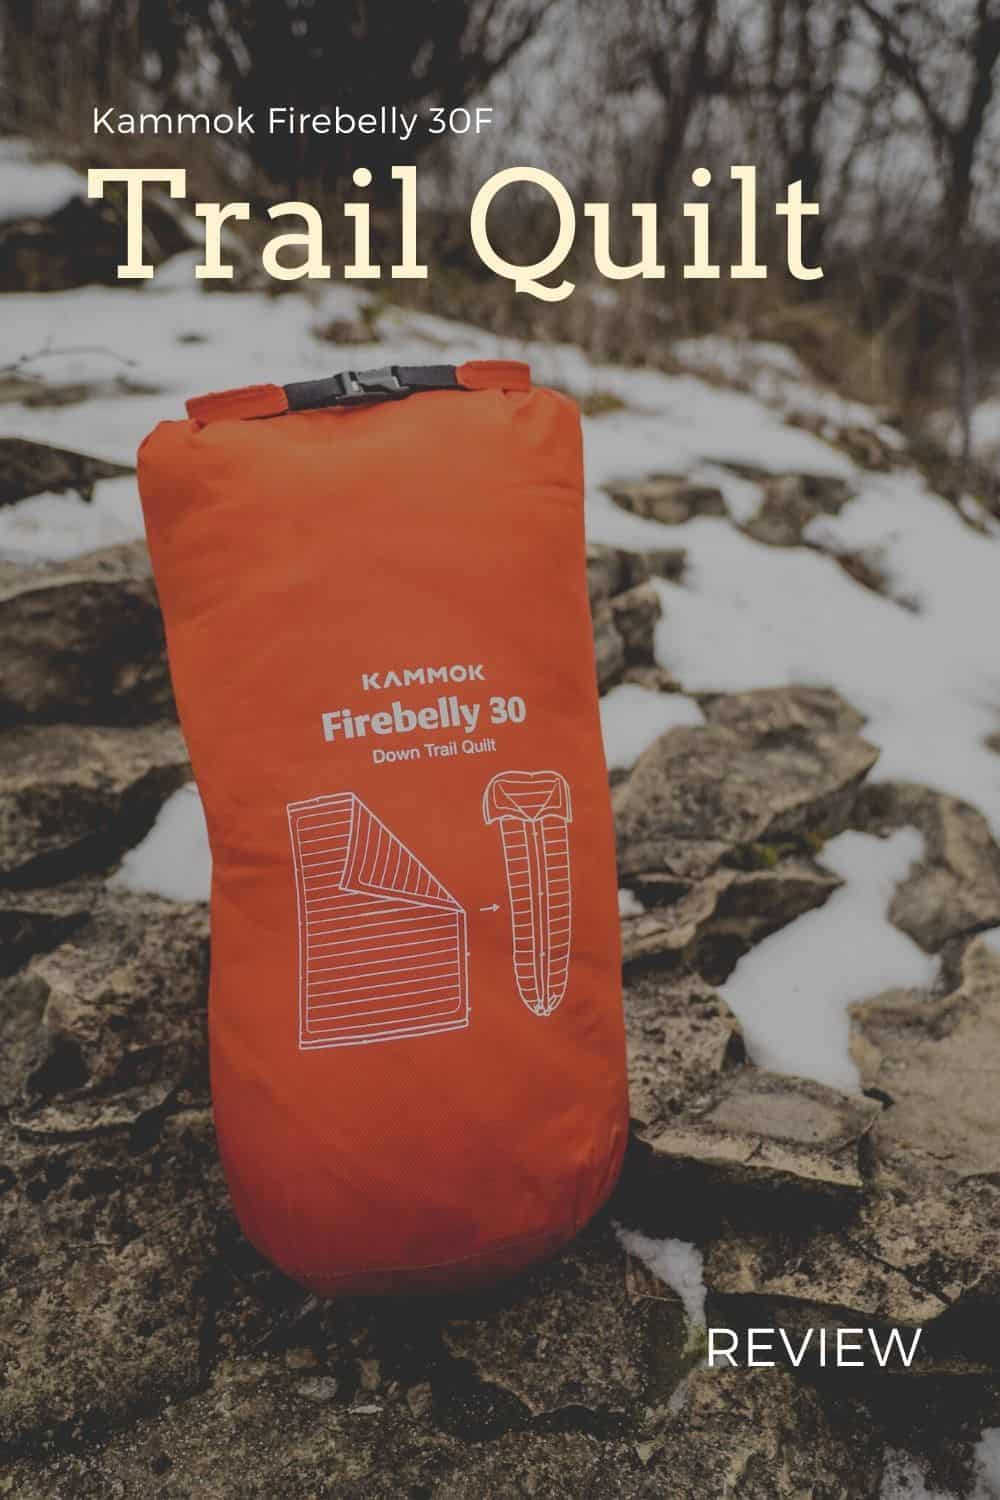 Kammok Firebelly 30 Down Trail Quilt Review